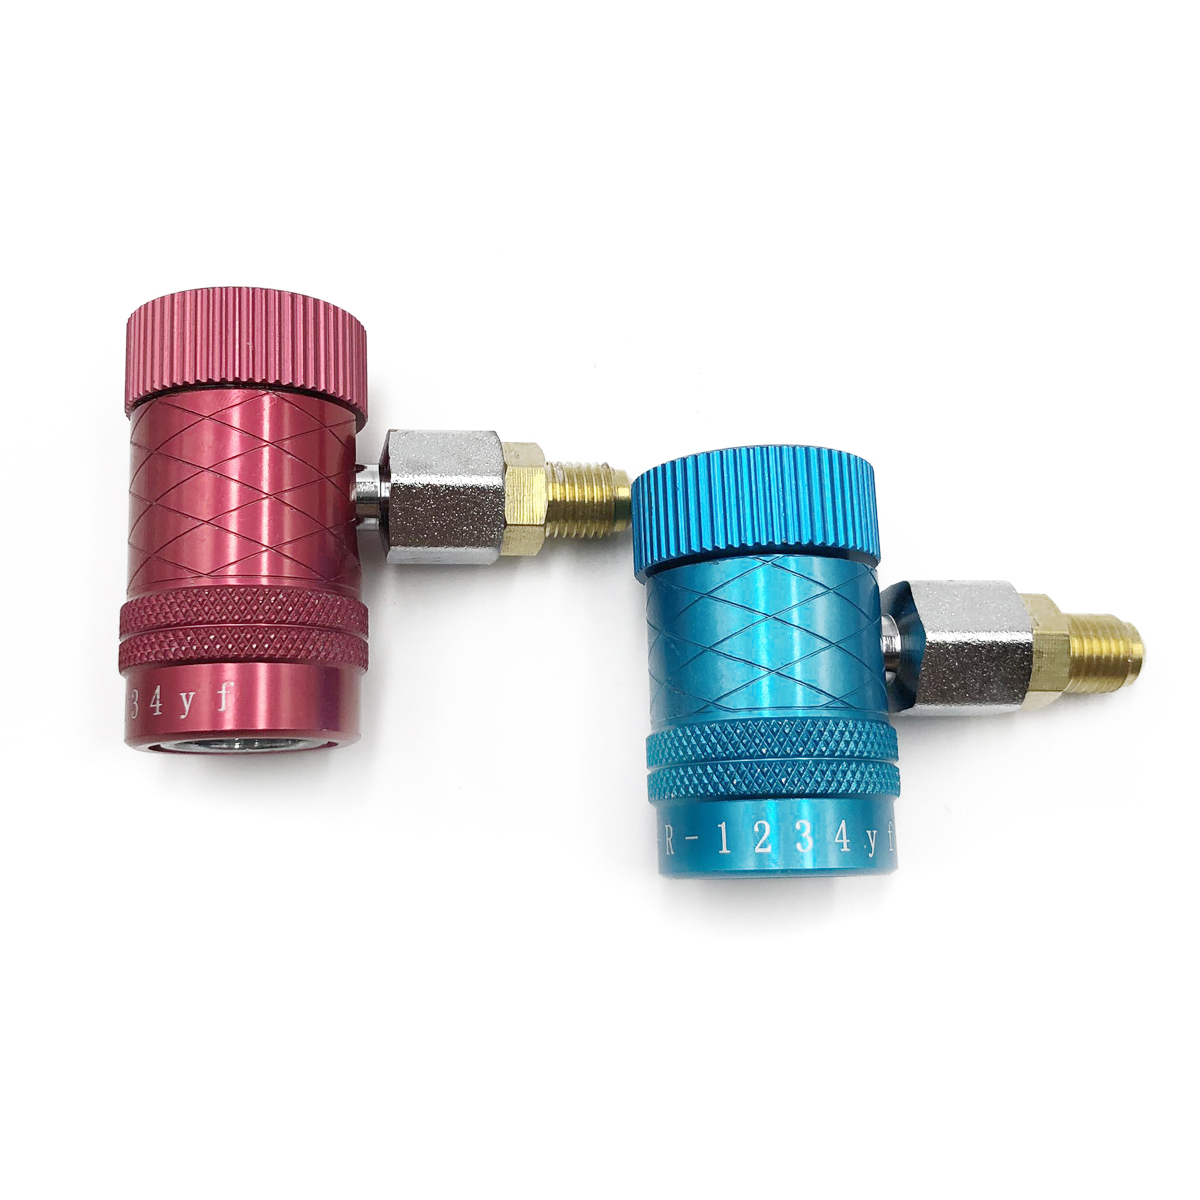 1 Pair R1234yf A/C Adjustable Quick Coupler Connector Adapter For Auto Air Conditioning Refrigera Mayitr1 Pair R1234yf A/C Adjustable Quick Coupler Connector Adapter For Auto Air Conditioning Refrigera Mayitr